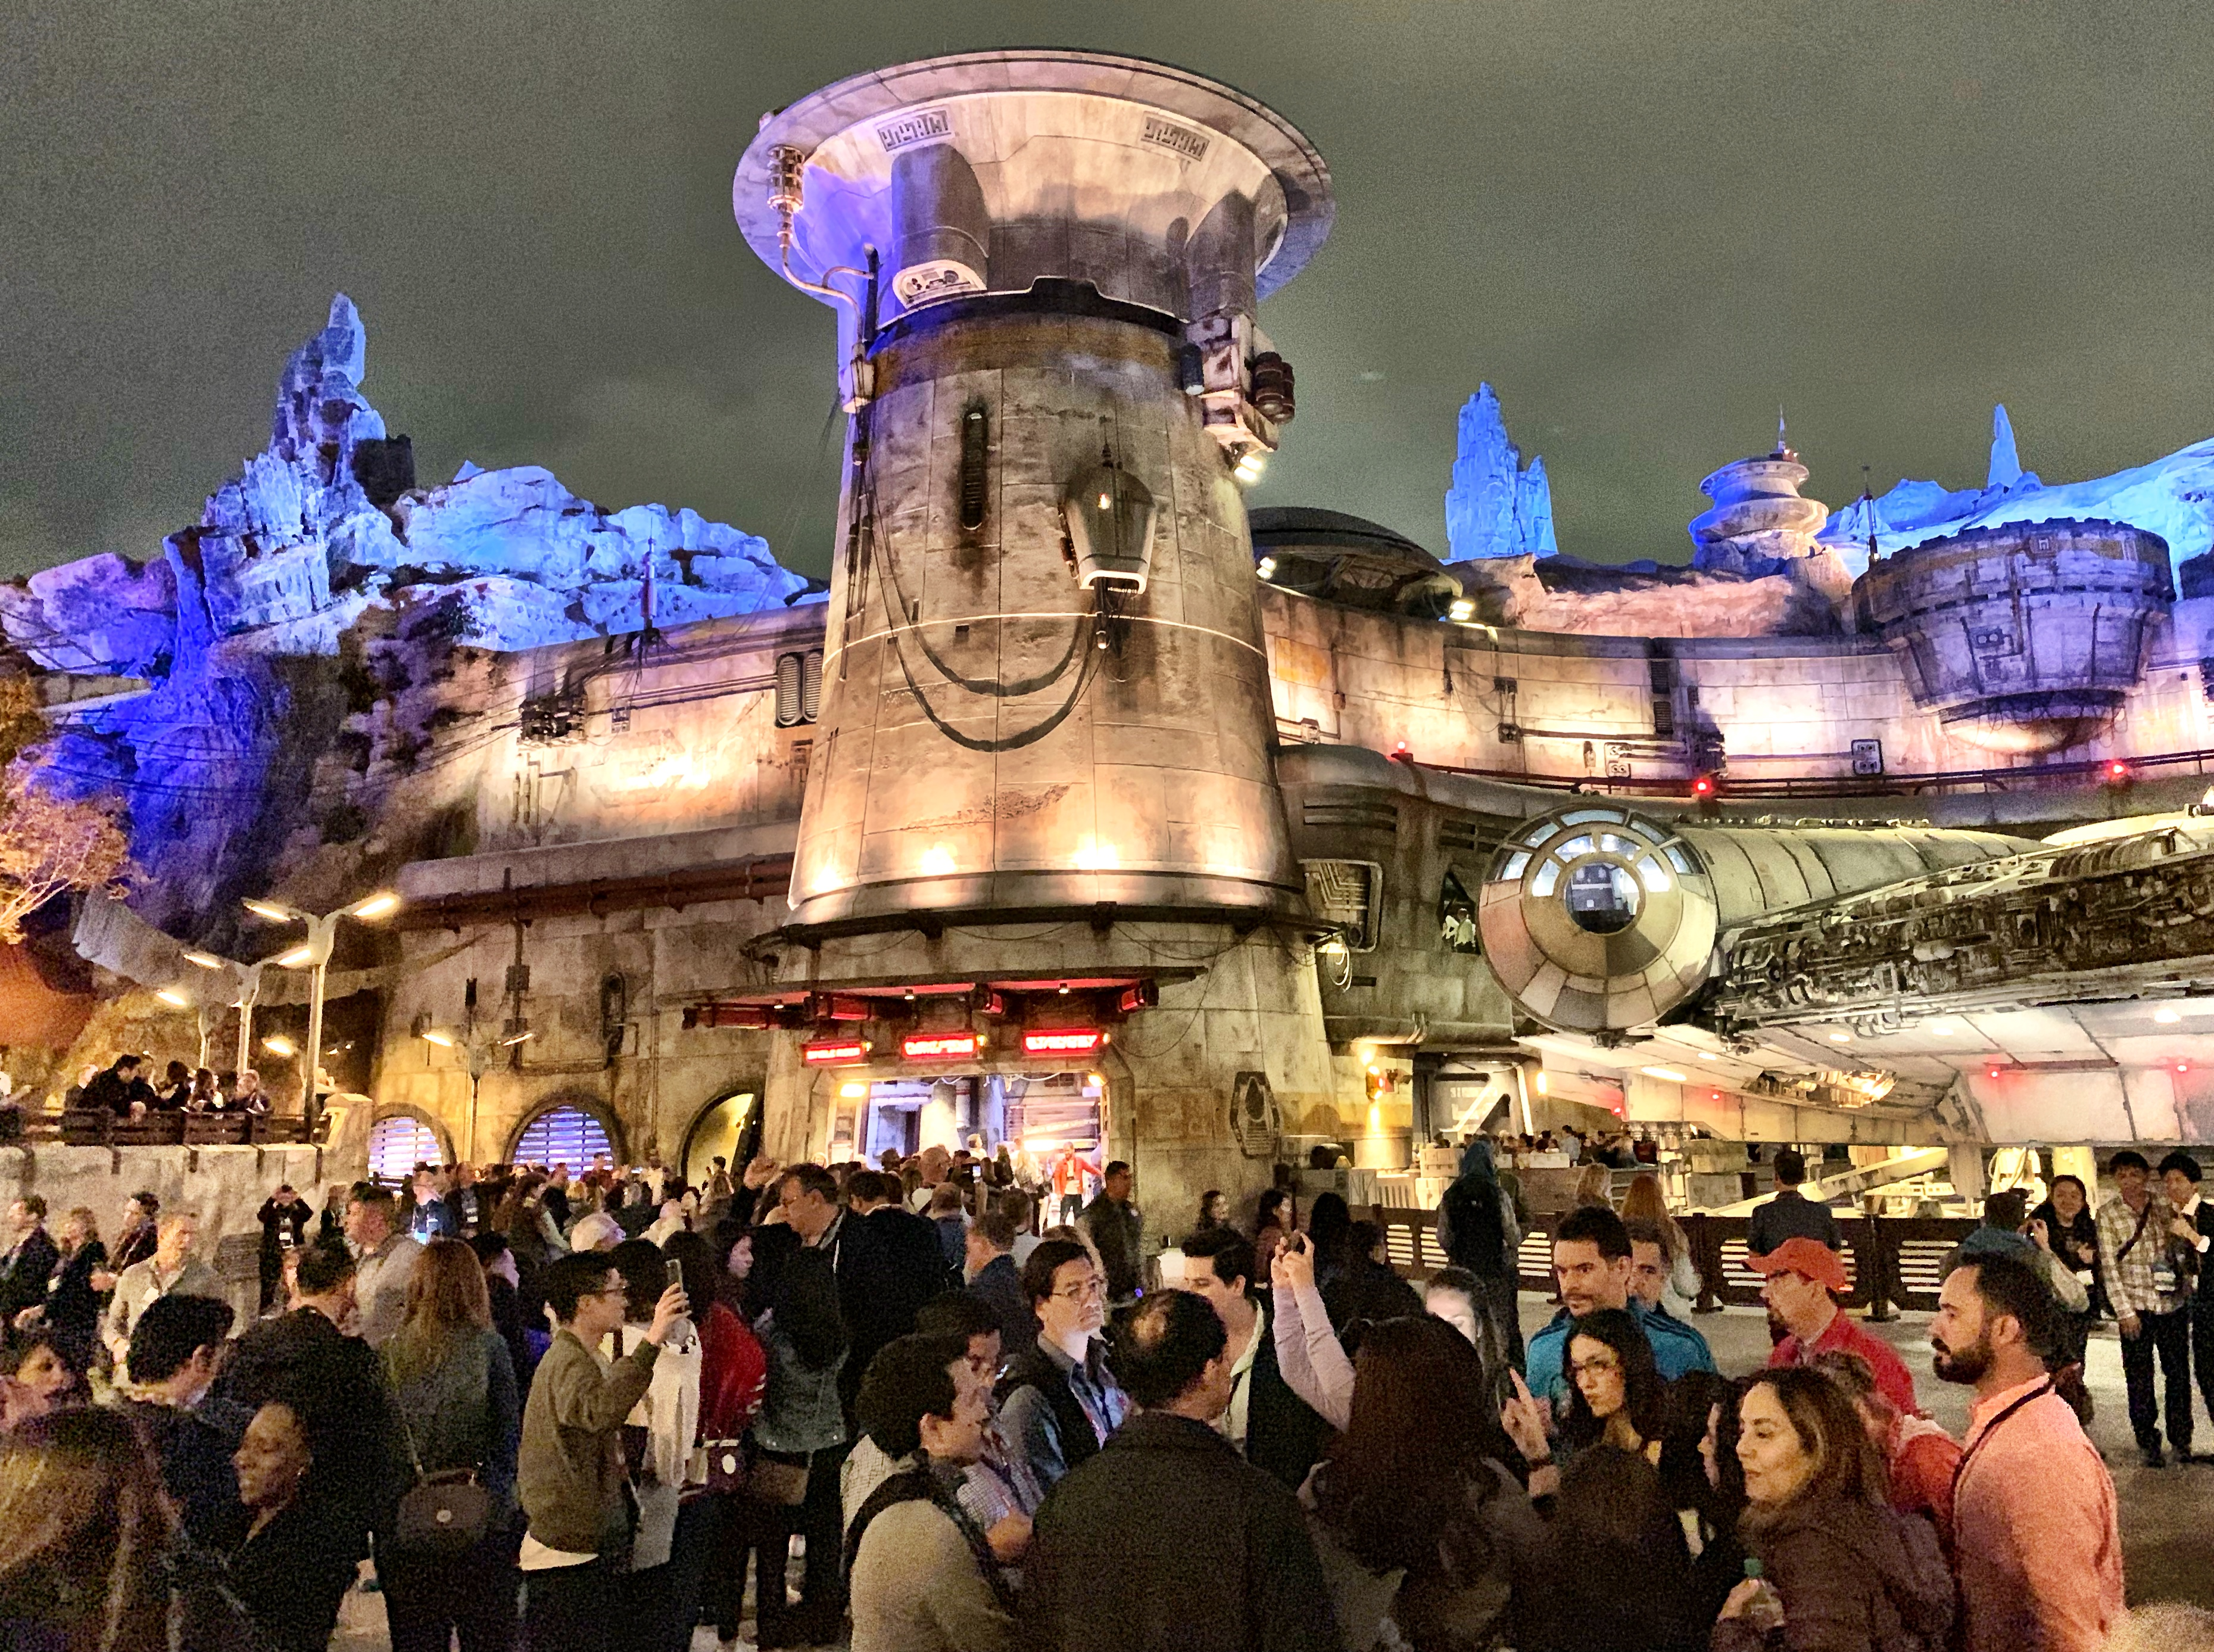 MAY THE FORCE BE WITH YOU. Delegates at IPW explore Star Wars: Galaxy's Edge at Disneyland Park in Anaheim, California.